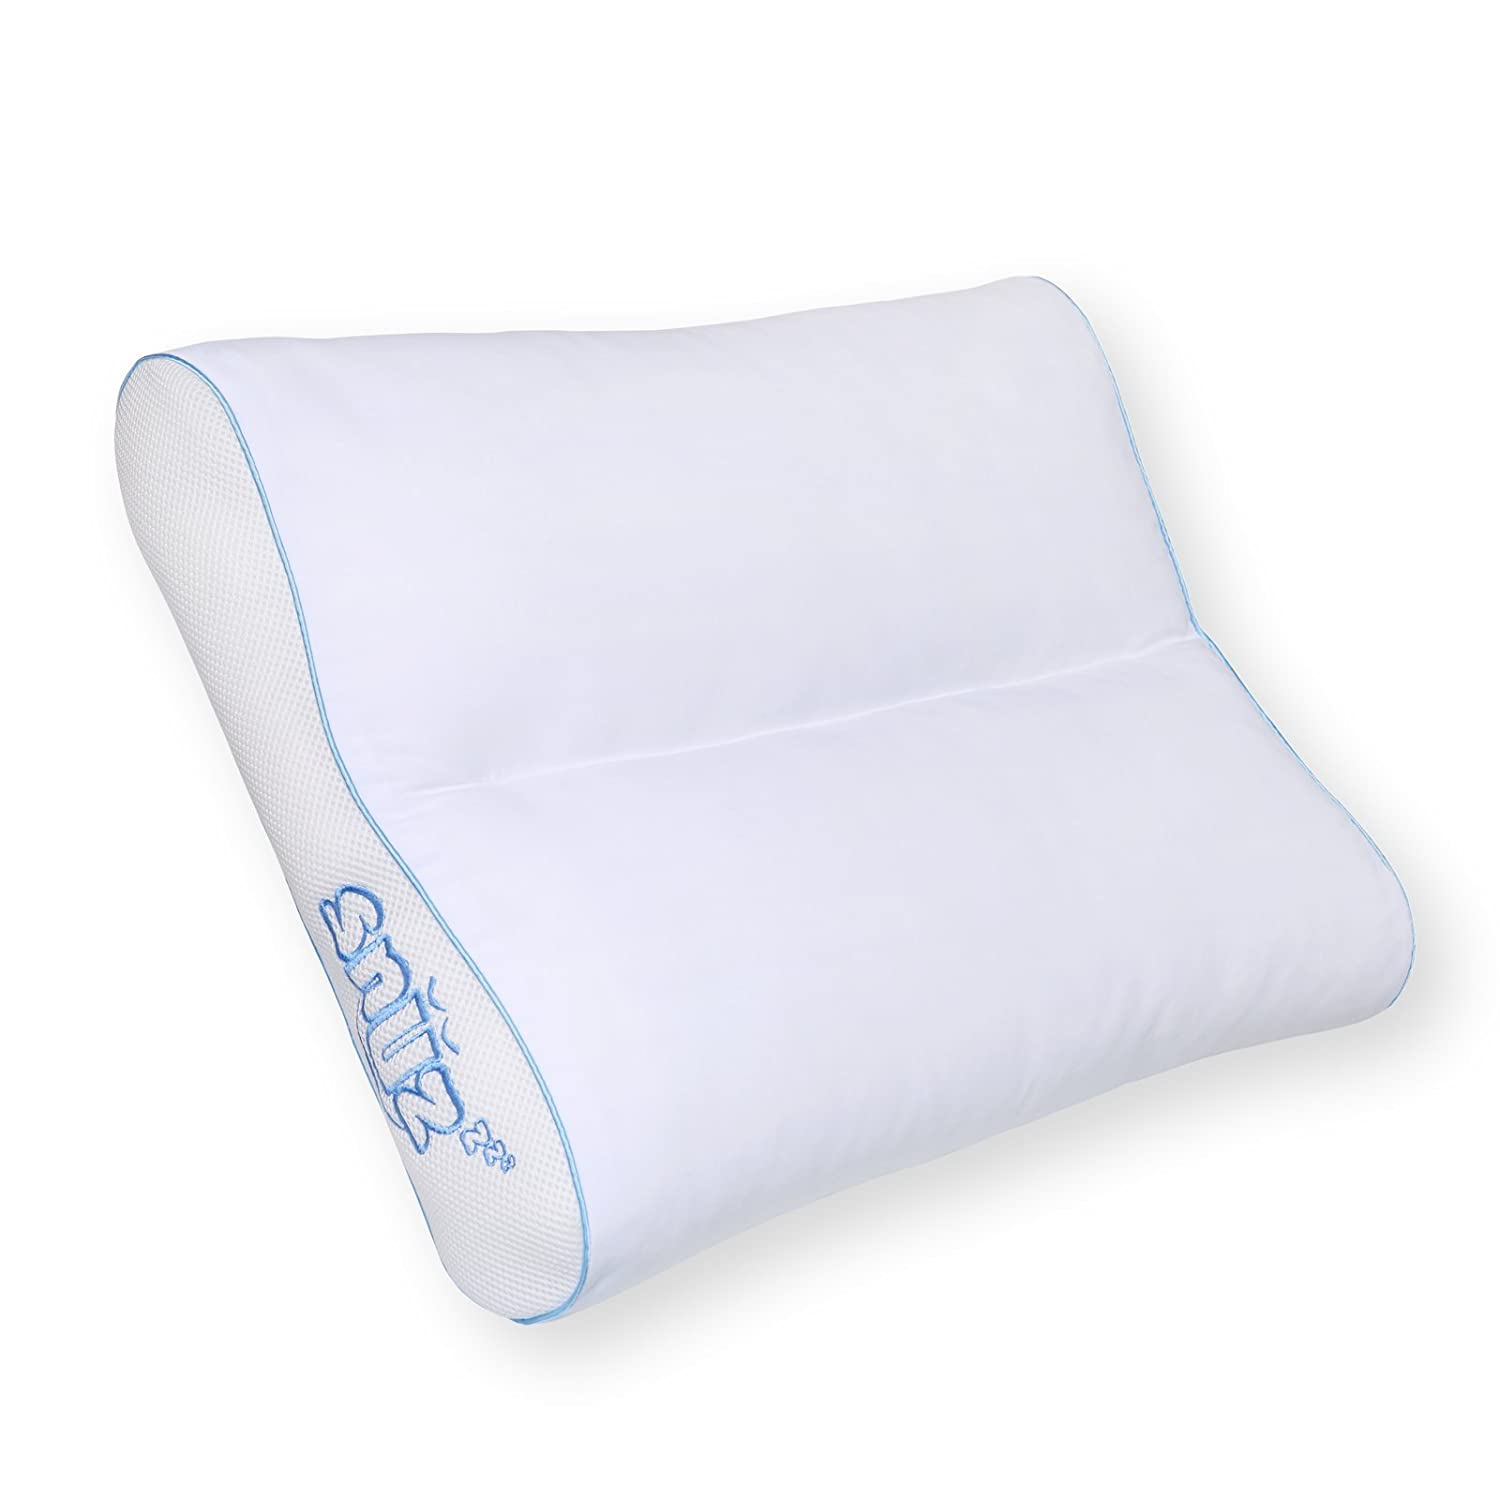 SNÜZ Sleep Bed Pillow – Best for Neck and Shoulder Pain